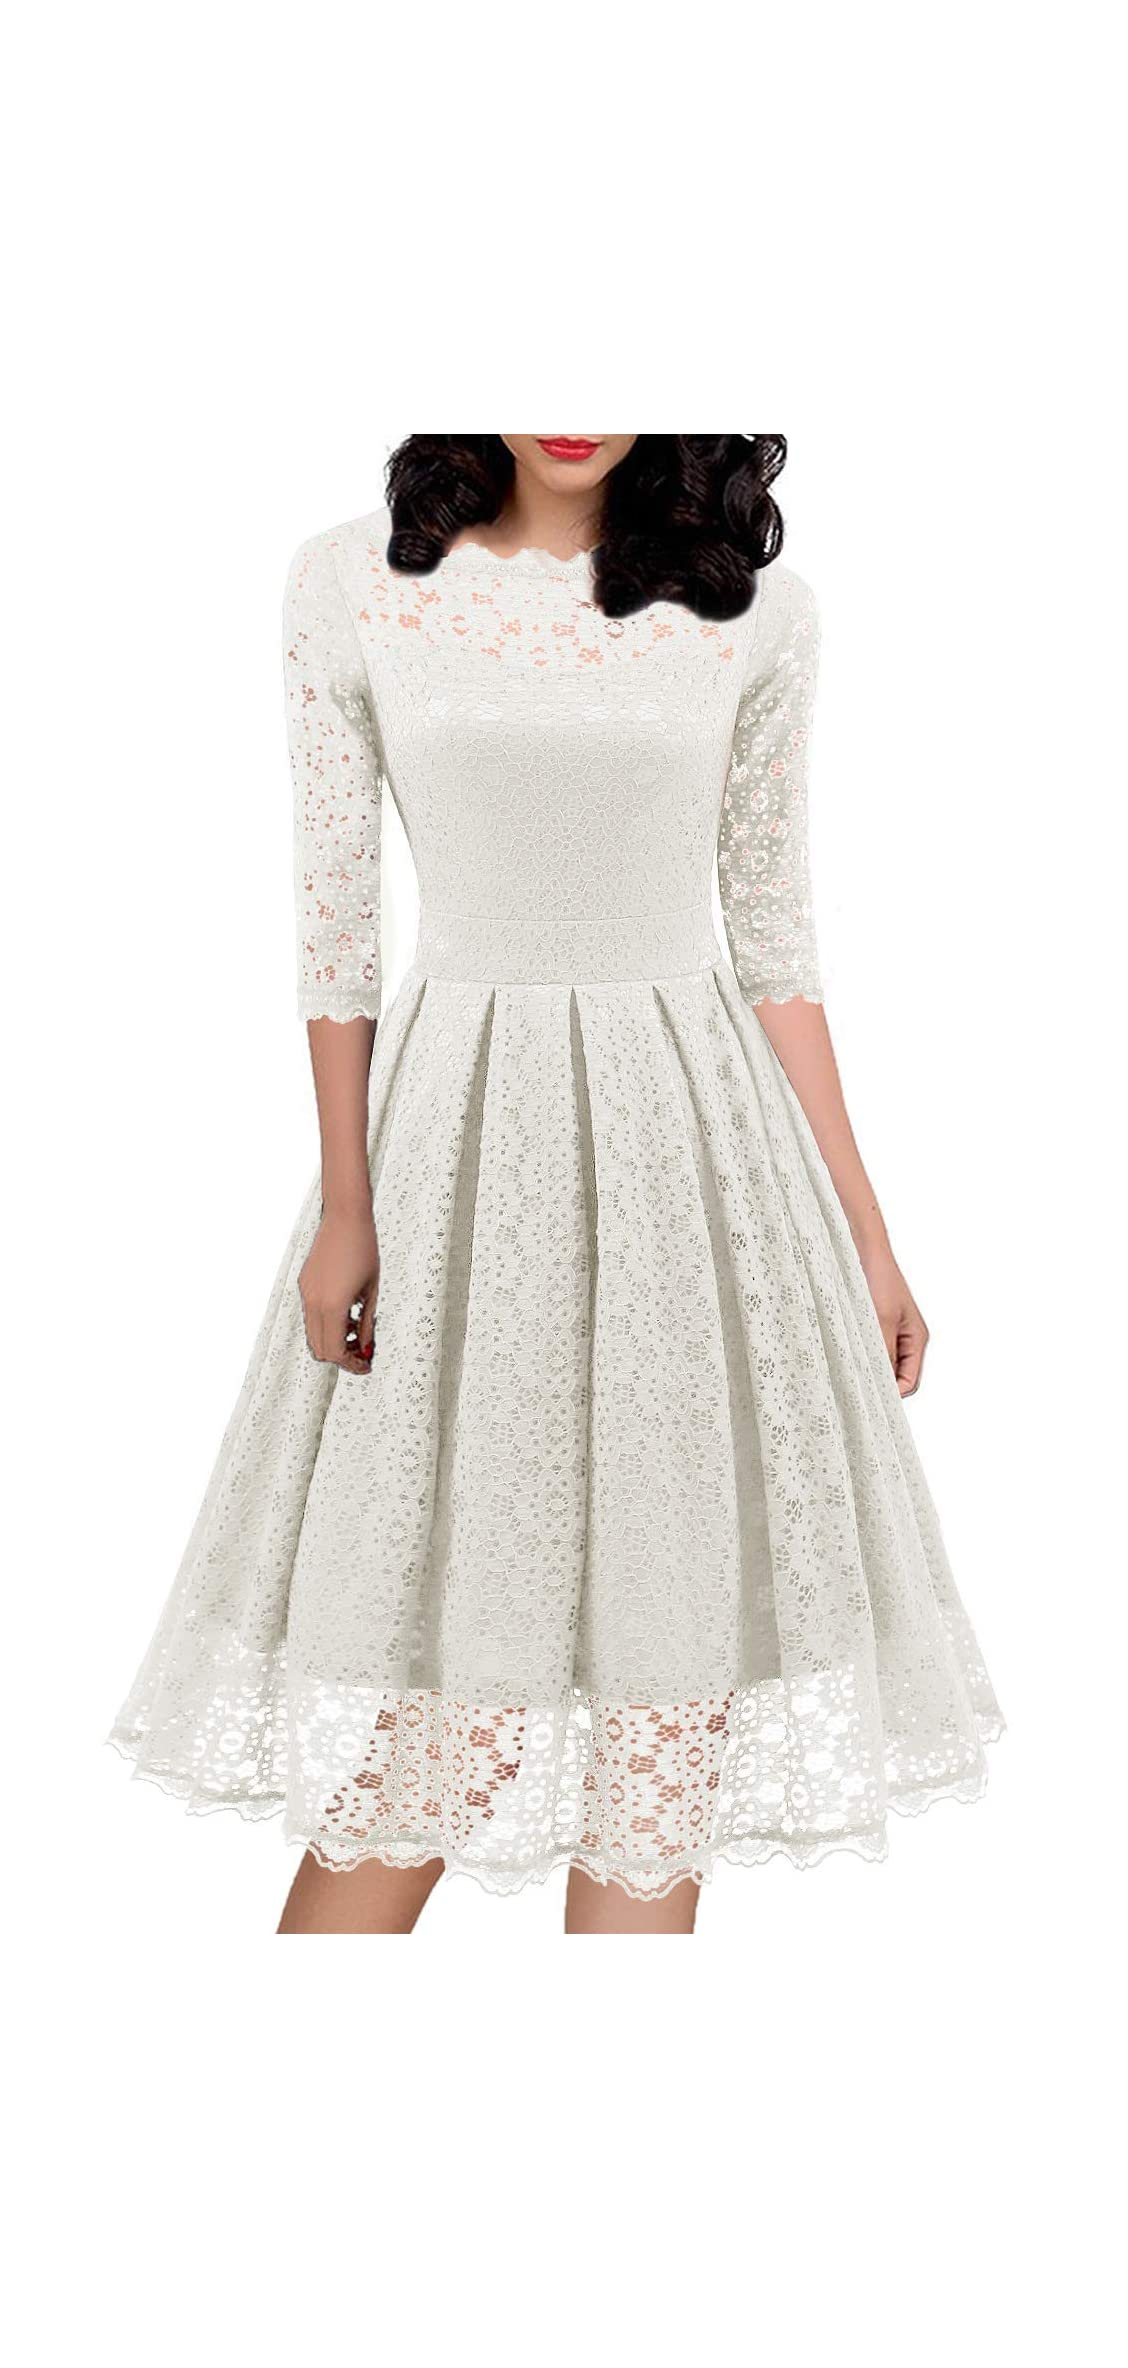 Women's S Vintage Floral Lace Half Sleeve Formal Cocktail